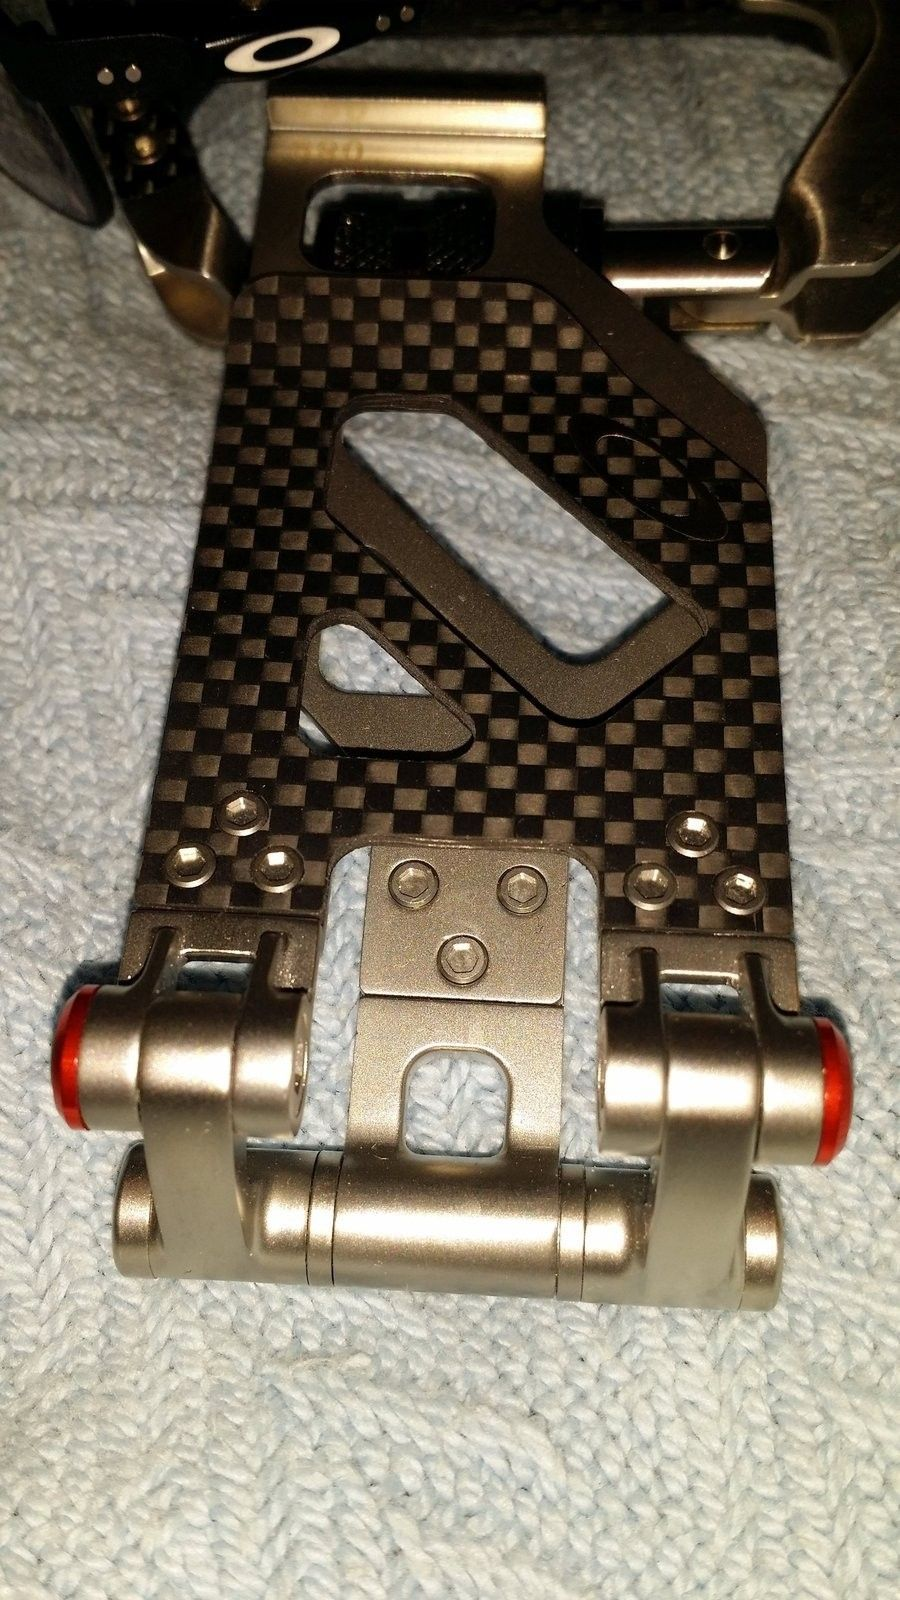 New carbon fiber clip - uploadfromtaptalk1432443066980.jpg